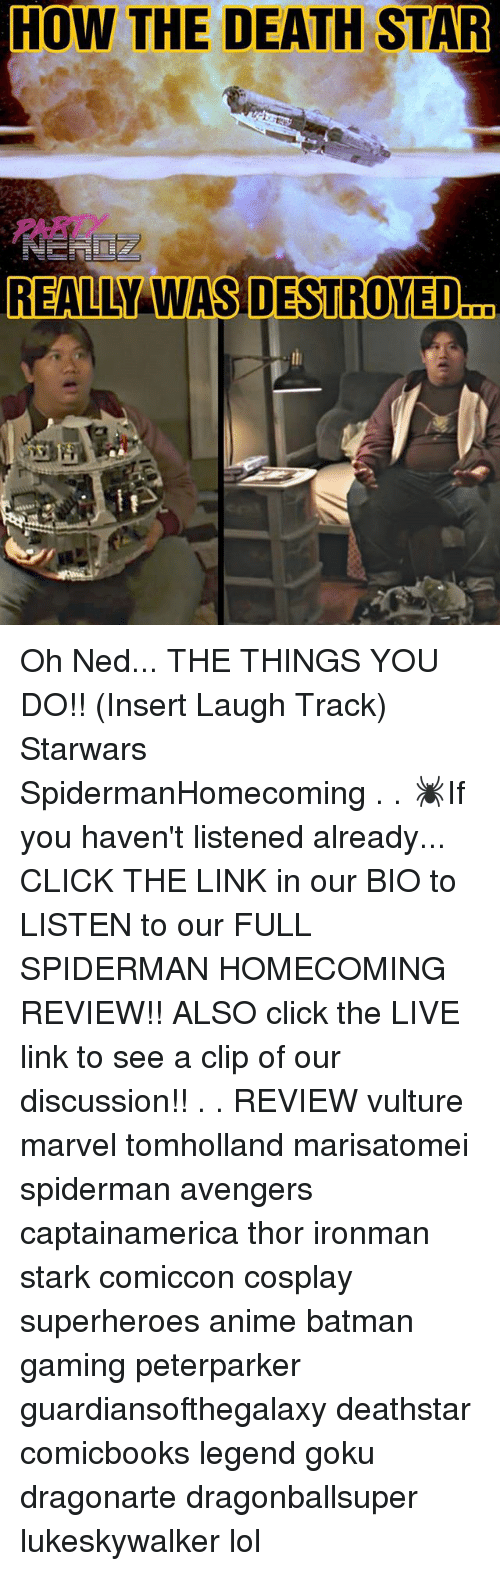 Insertions: HOW THE DEATH STAR  PAR  REALLY WAS DESTROYED  ... Oh Ned... THE THINGS YOU DO!! (Insert Laugh Track) Starwars SpidermanHomecoming . . 🕷️If you haven't listened already... CLICK THE LINK in our BIO to LISTEN to our FULL SPIDERMAN HOMECOMING REVIEW!! ALSO click the LIVE link to see a clip of our discussion!! . . REVIEW vulture marvel tomholland marisatomei spiderman avengers captainamerica thor ironman stark comiccon cosplay superheroes anime batman gaming peterparker guardiansofthegalaxy deathstar comicbooks legend goku dragonarte dragonballsuper lukeskywalker lol